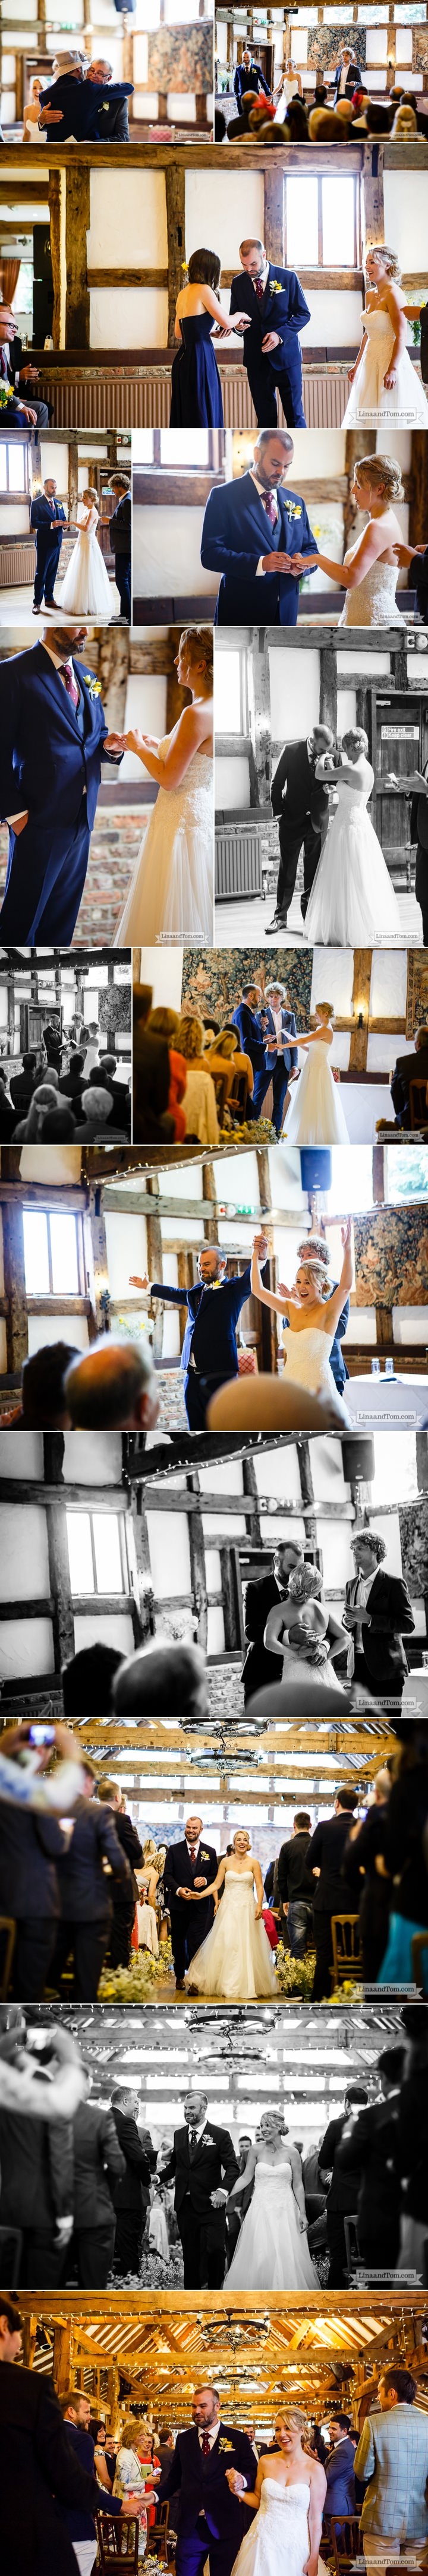 Claire_Stuart_Wedding_HighRocks_10